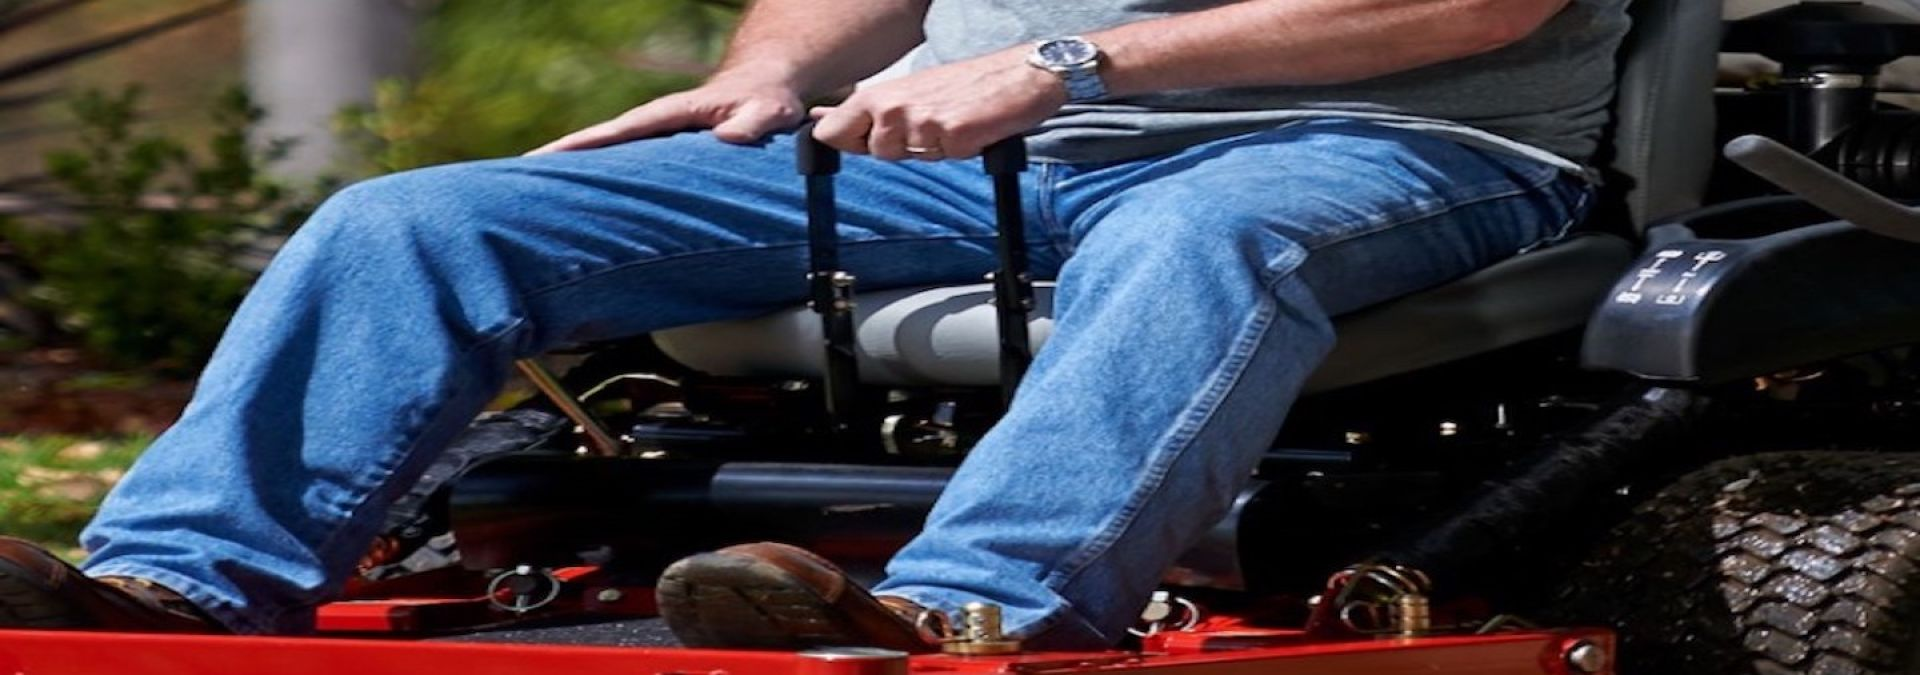 ride on lawn mowers benefits